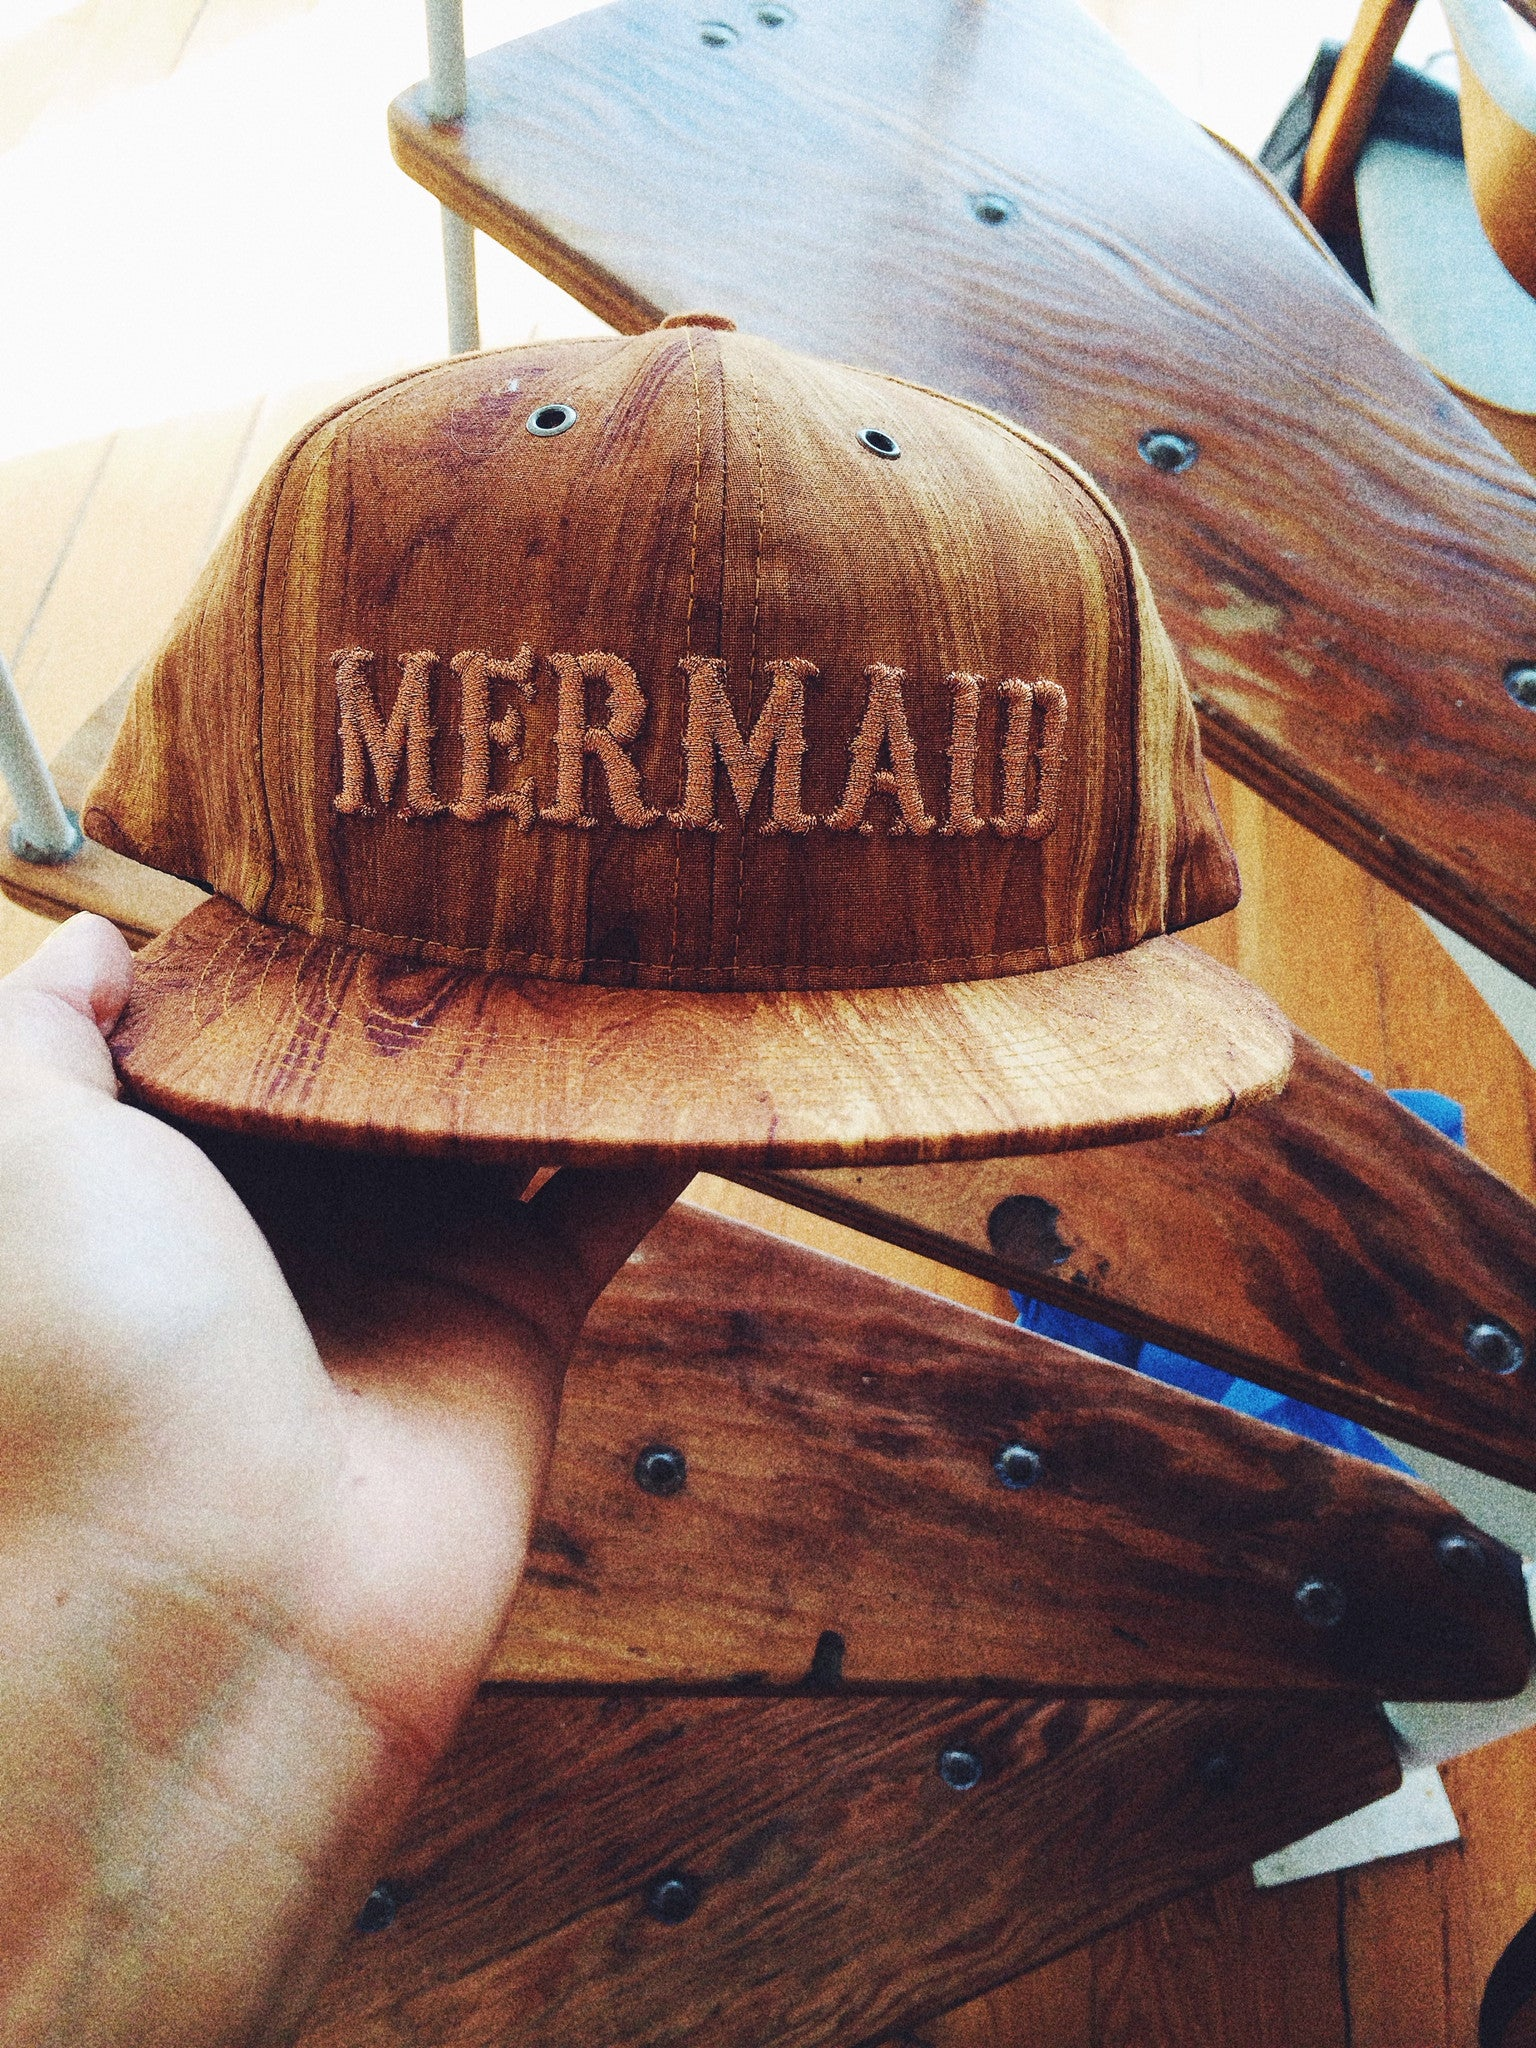 Wood Grain Mermaid SnapBacl